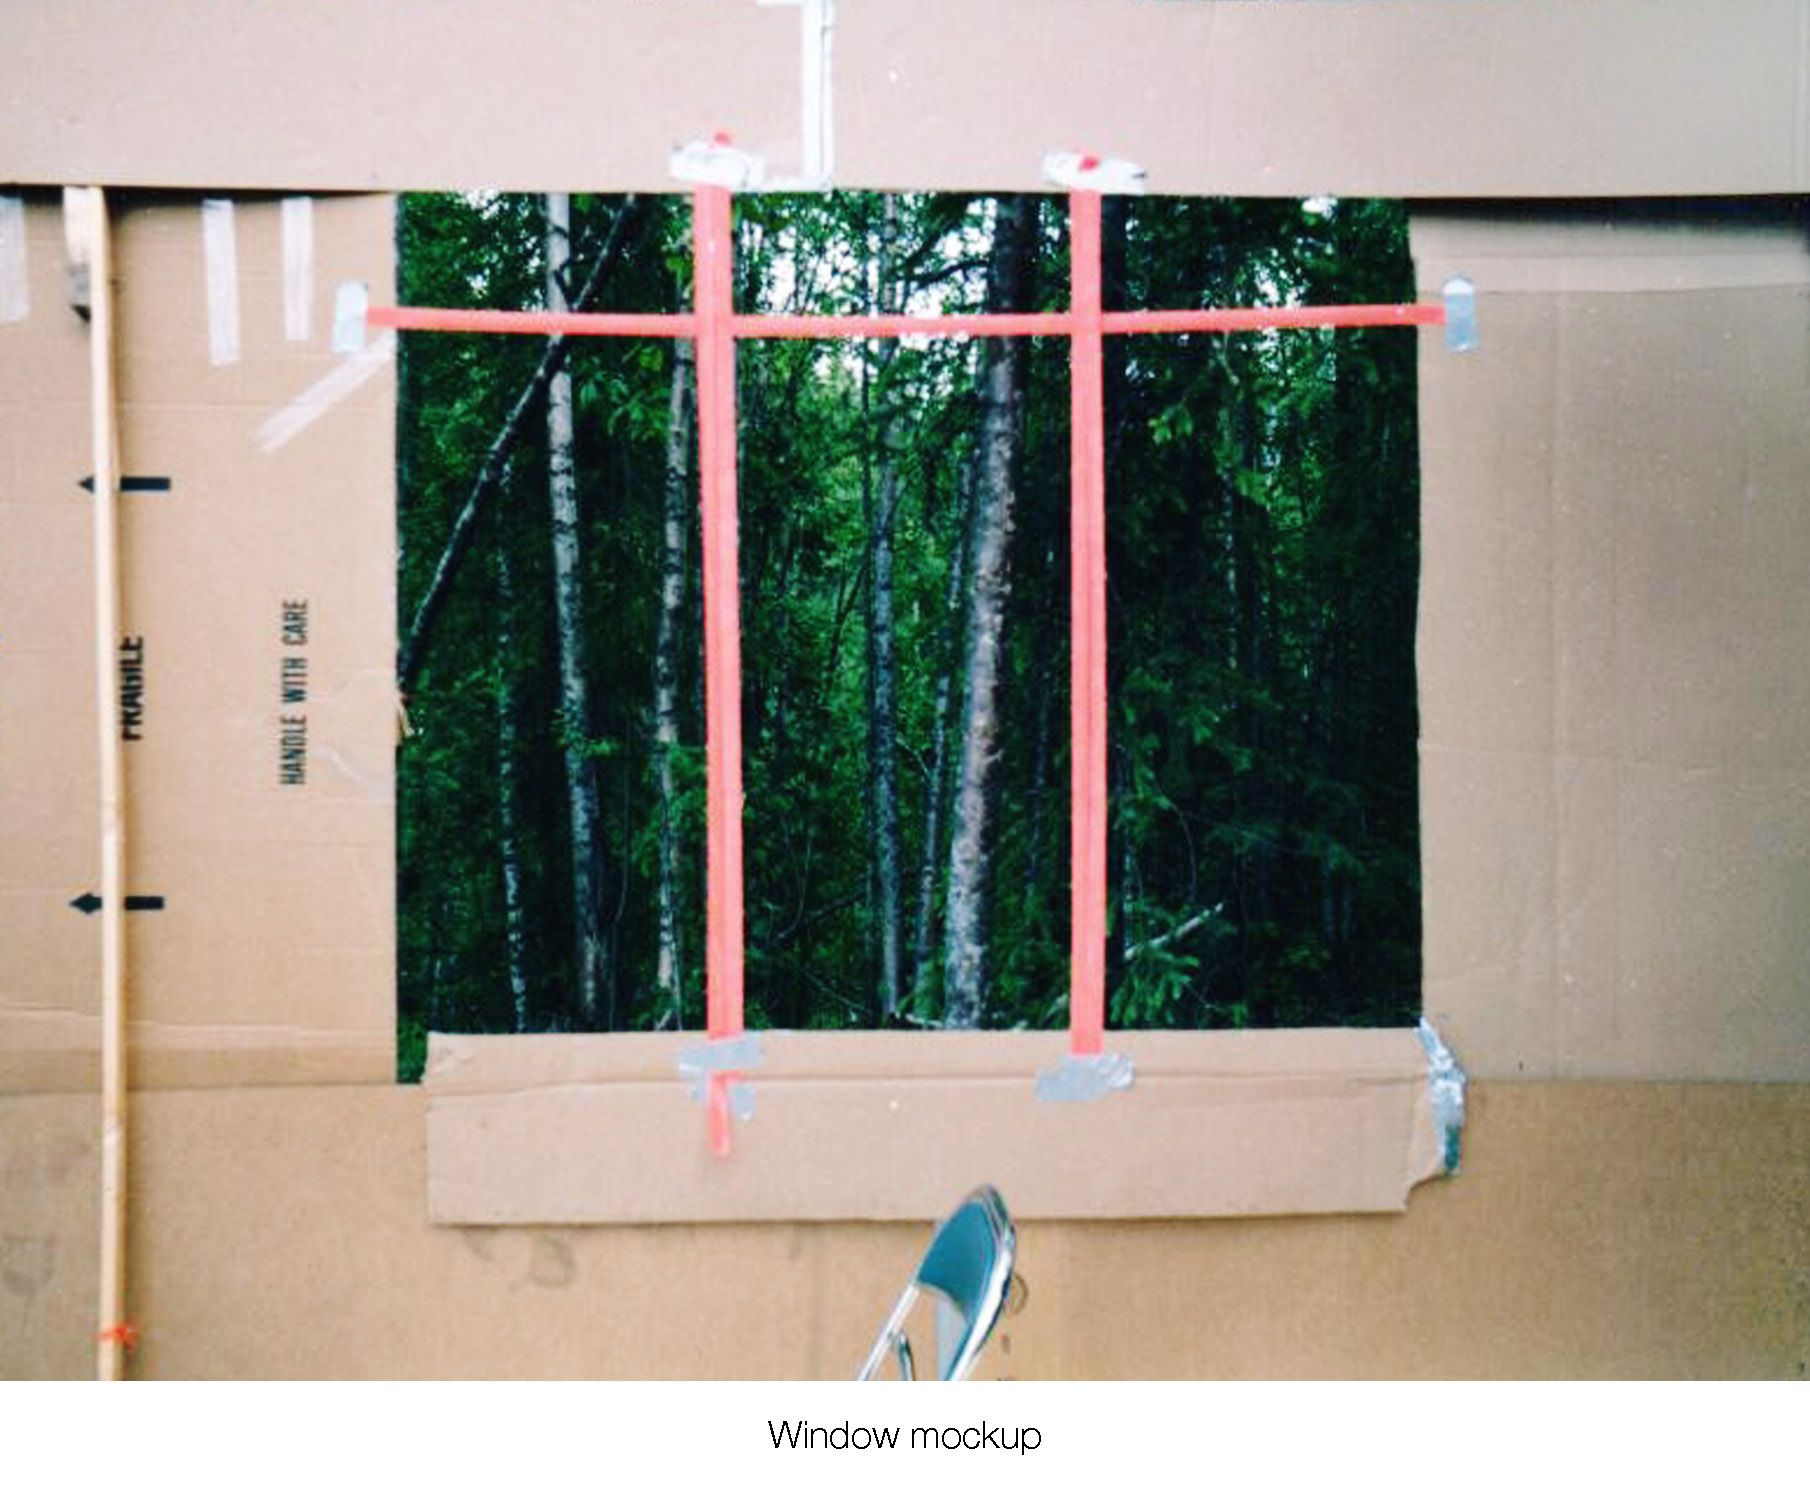 House on the meadow bedroom on site window design mock-up using surveyor tape and cardboard